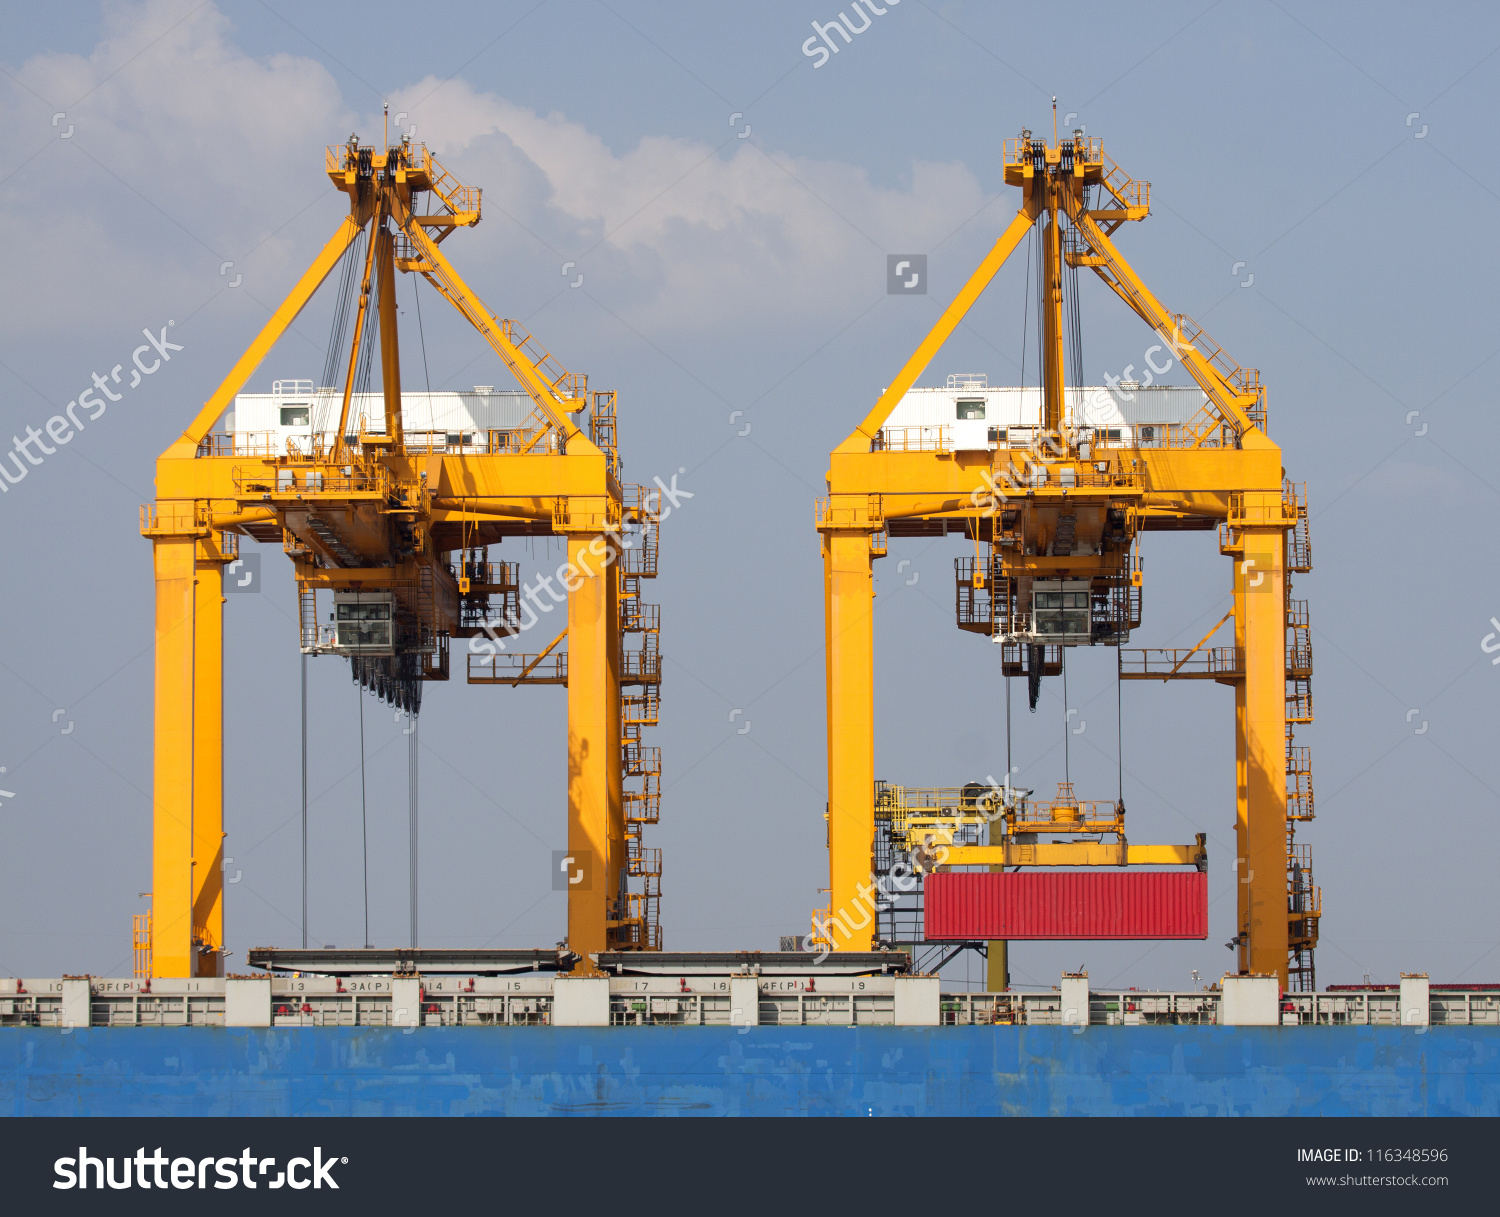 Container Cargo Freight Ship Working Crane Stock Photo 116348596.